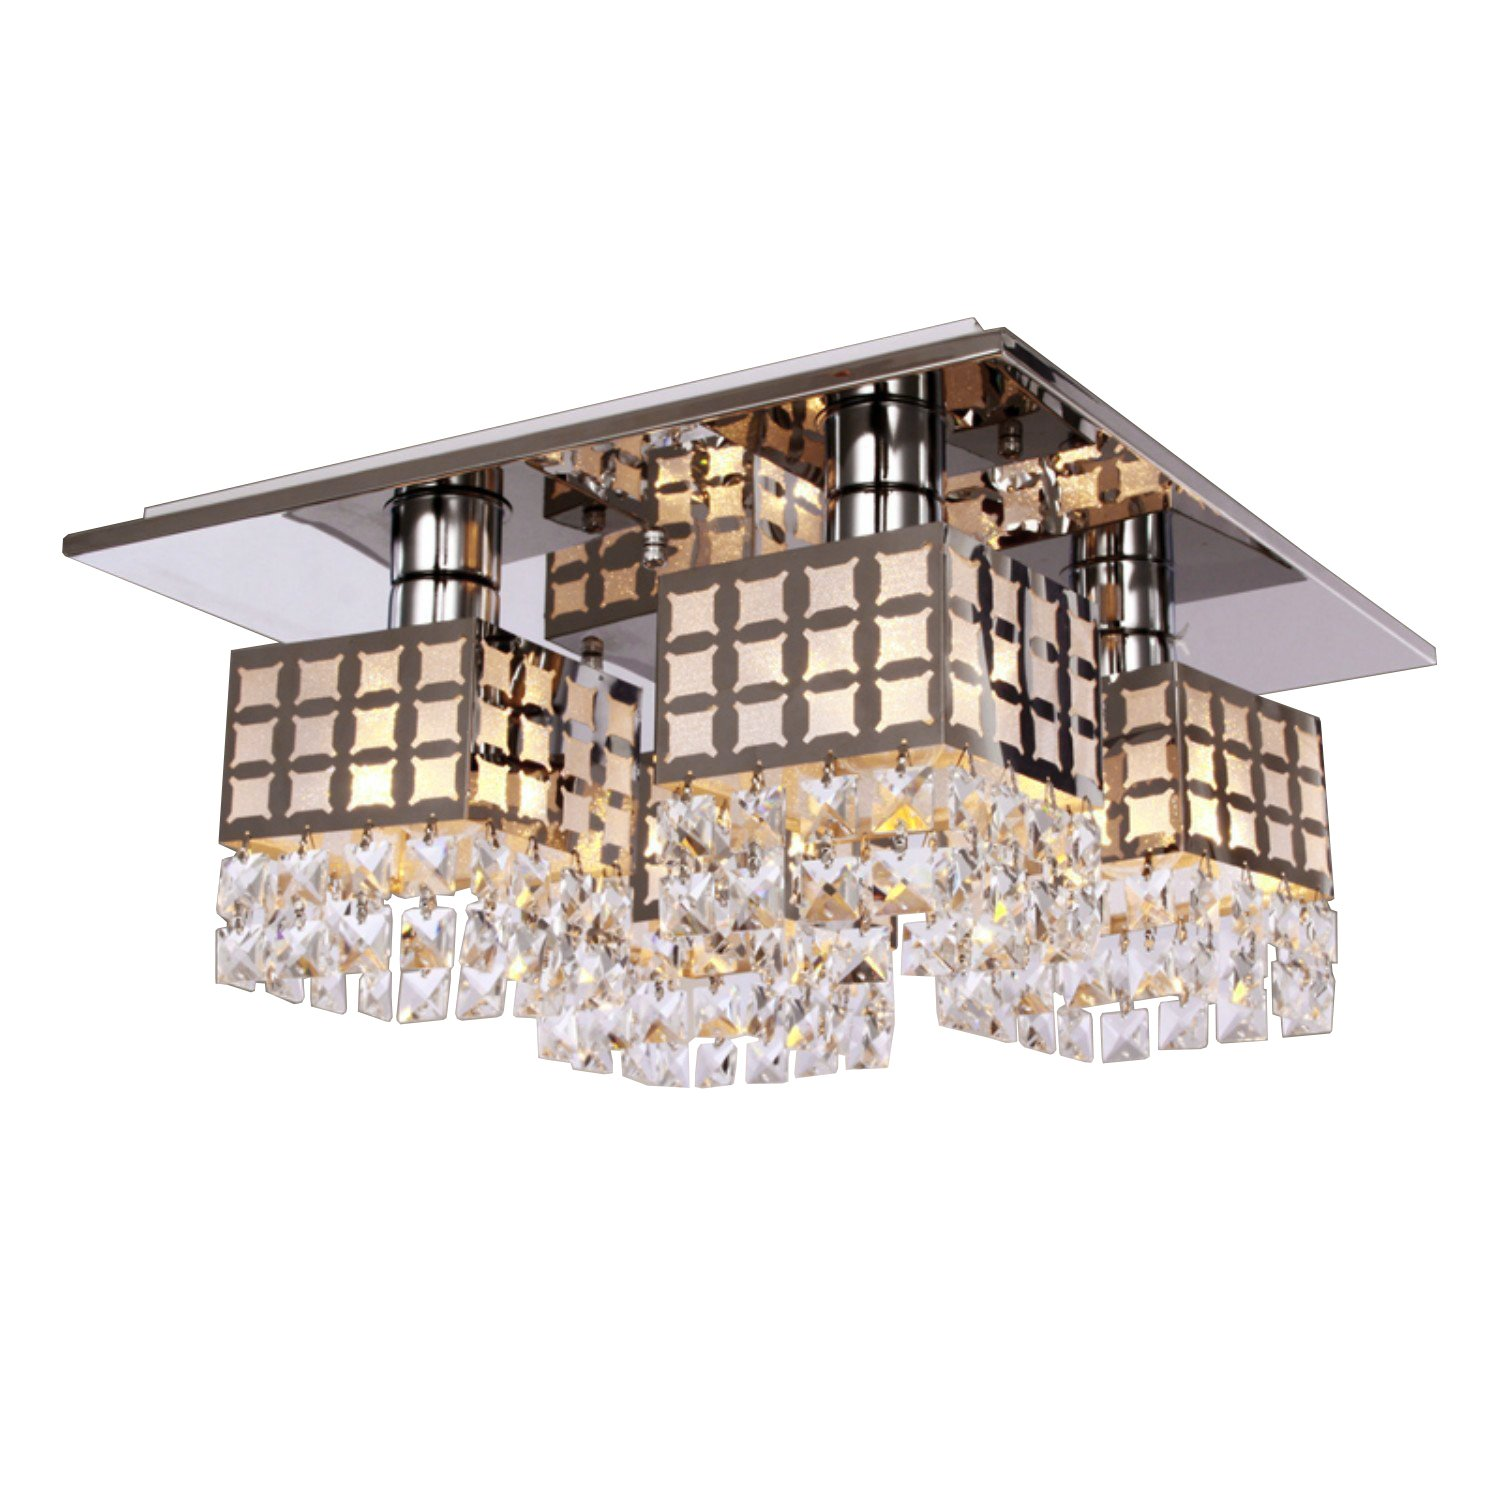 Lightess Crystal Flush Mount Ceiling Light Fixture Square Modern Chandelier Lighting Stainless Steel with 4 Lights